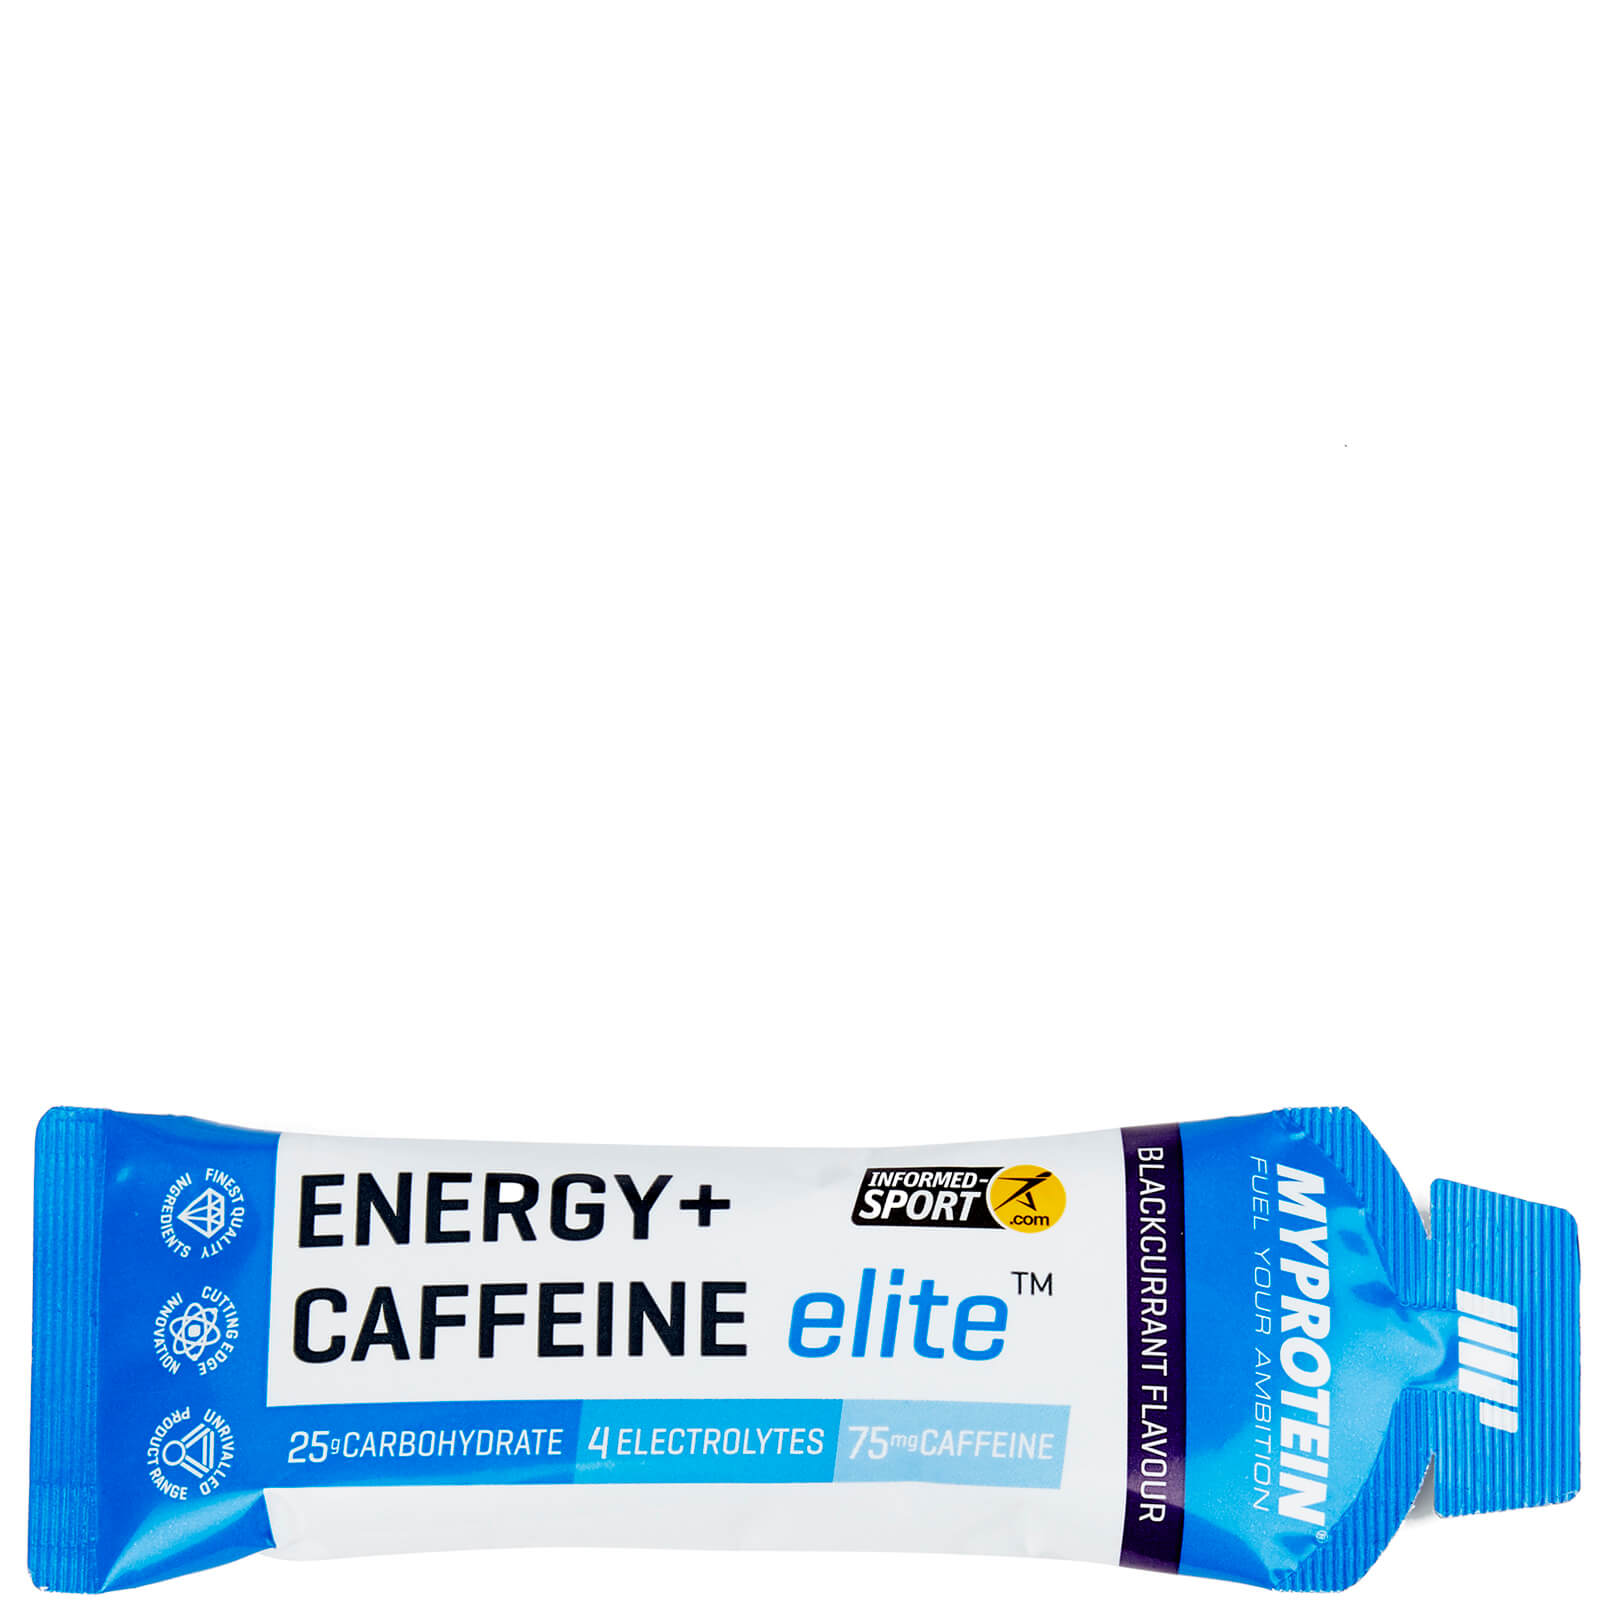 Myprotein Energy Elite + Caffeine, Blackcurrant, 50g